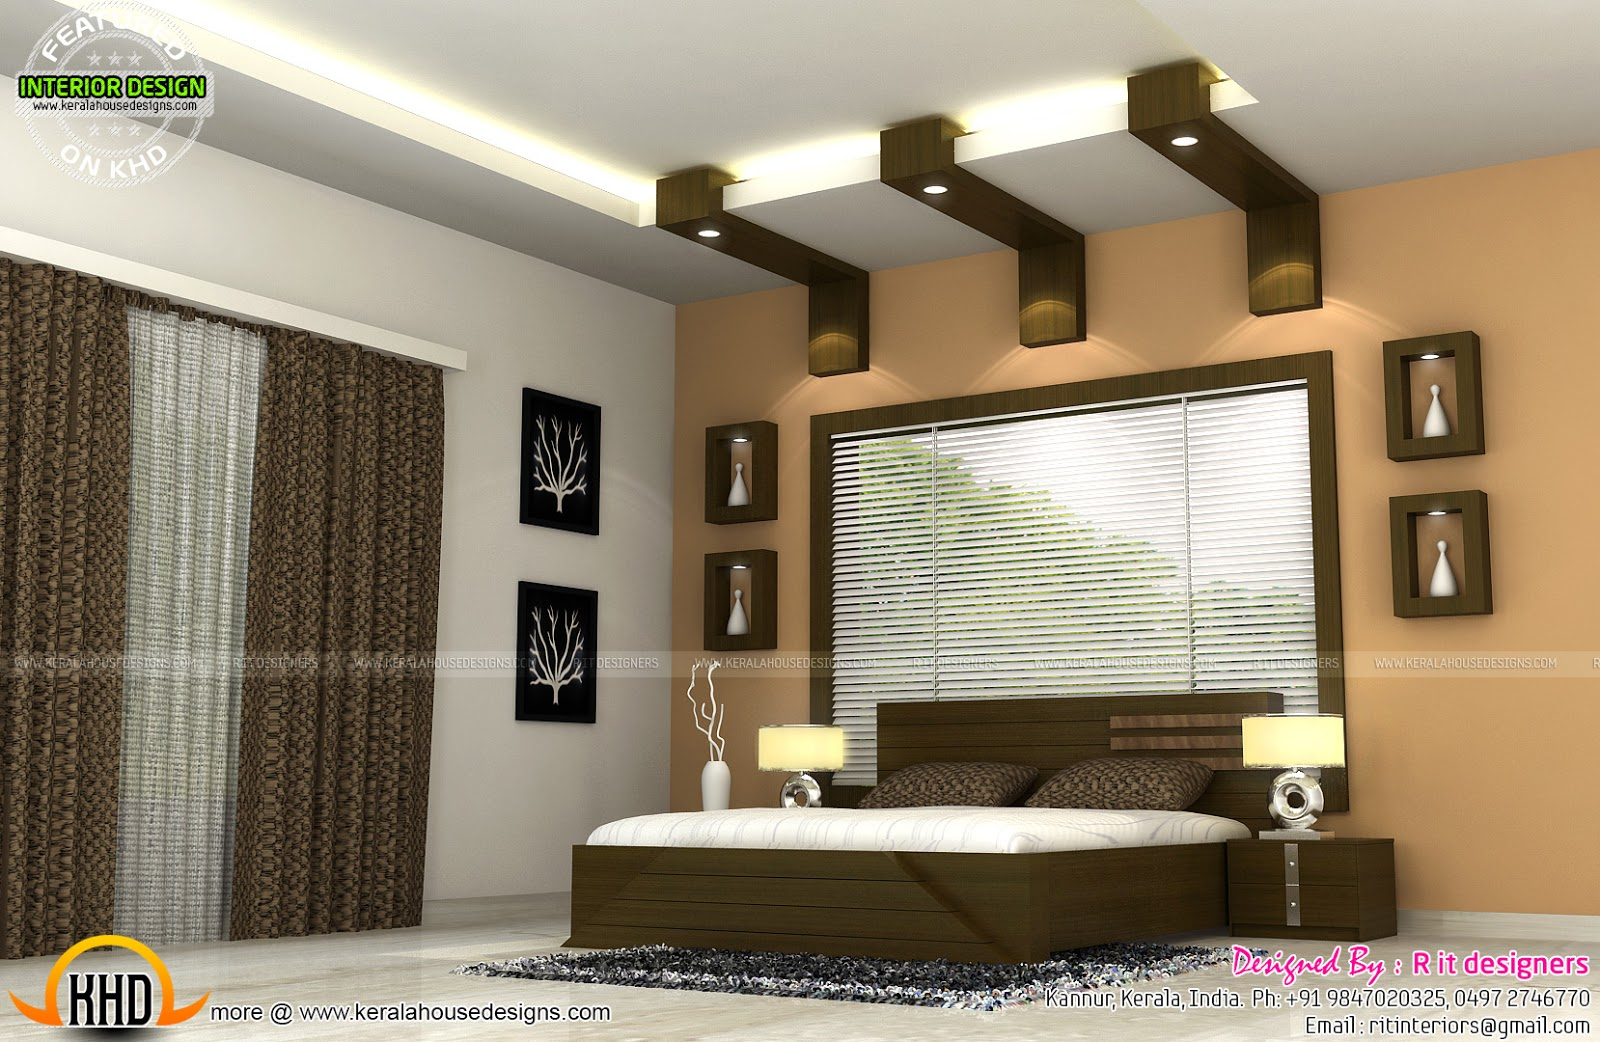 Interiors of bedrooms and kitchen kerala home design and for House interior design pictures